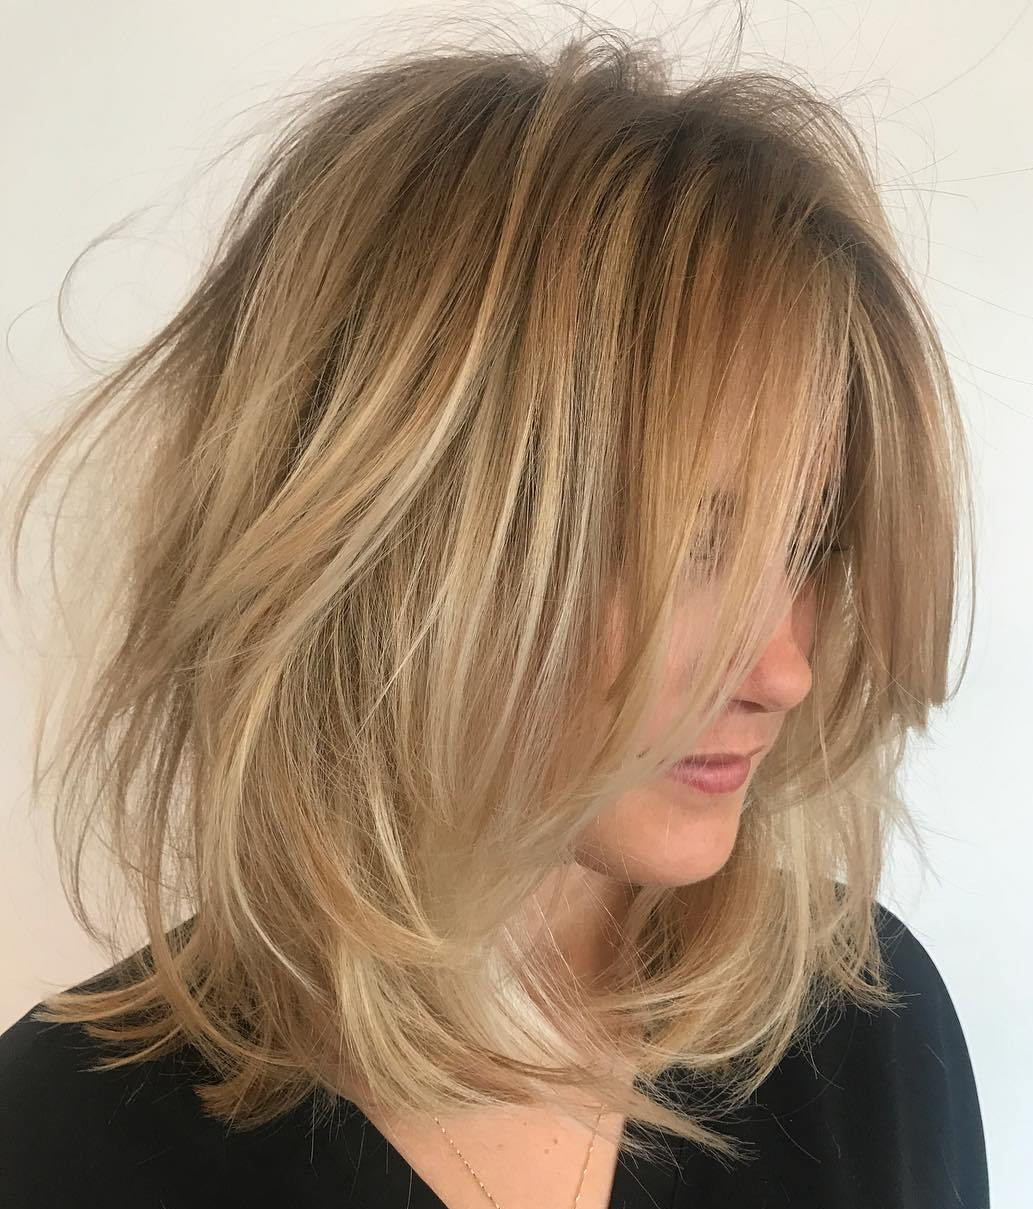 Best ideas about Hairstyles For Thinning Hair Female . Save or Pin 70 Devastatingly Cool Haircuts for Thin Hair Now.